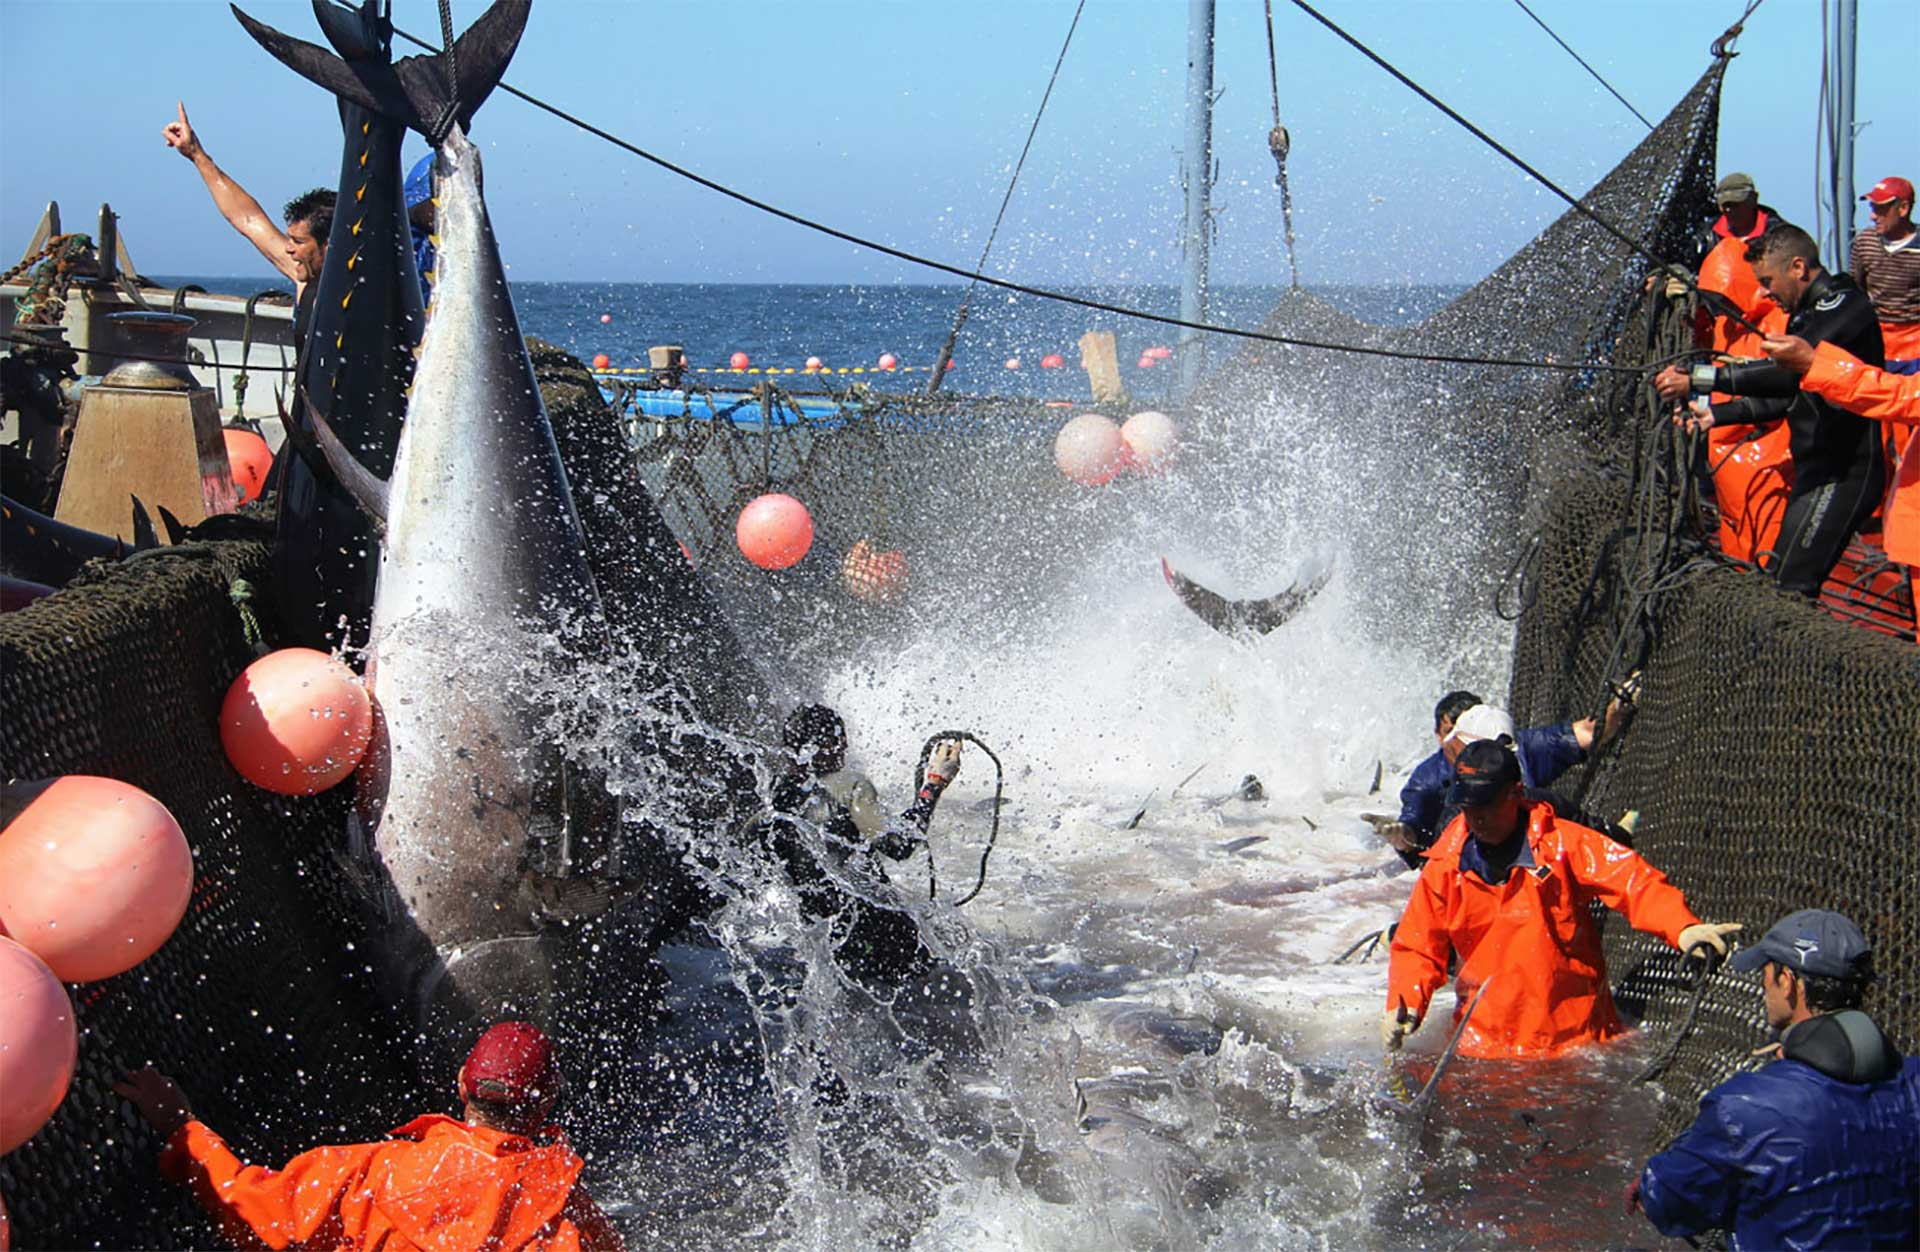 Impressive century-old fishing technique of the bluefin tuna in Southern Spain